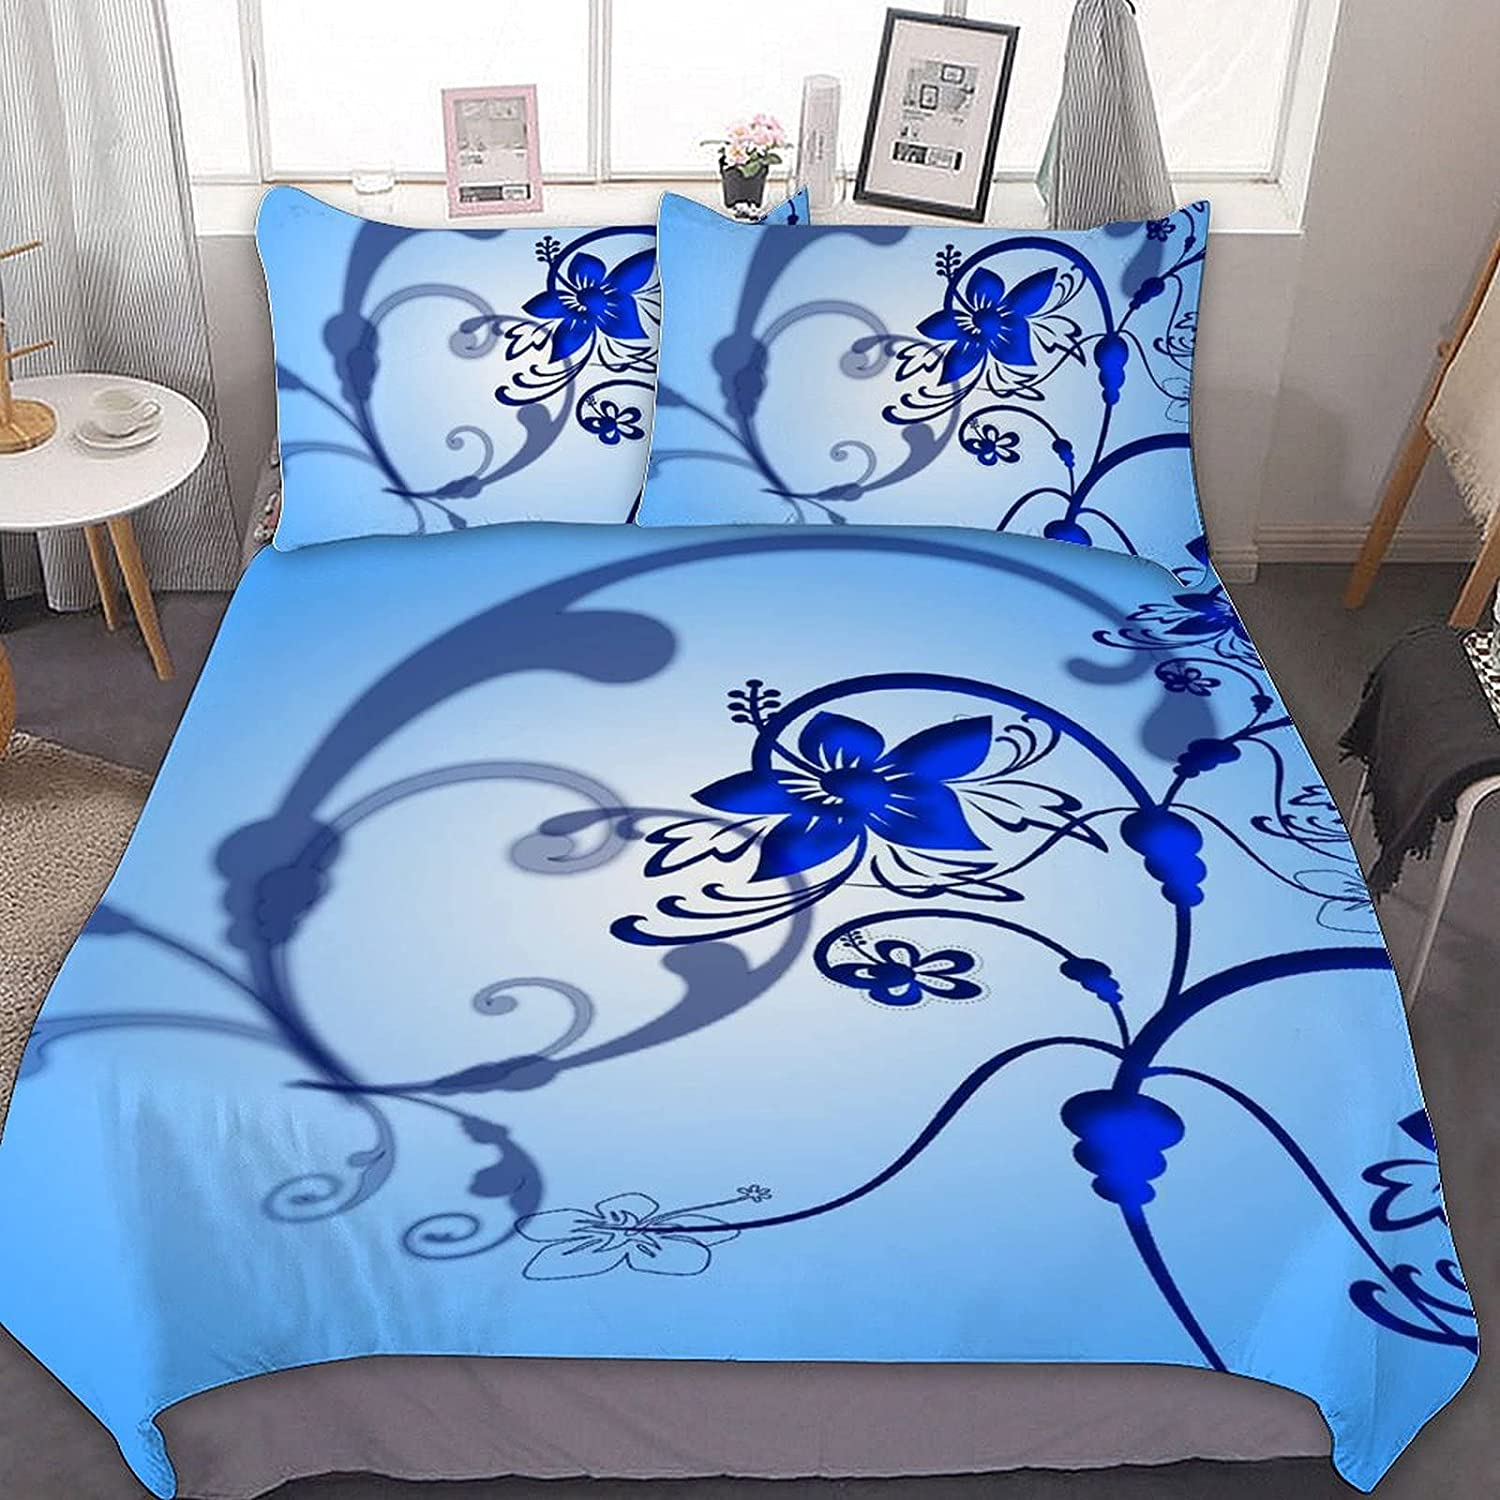 Floral Pattern Bedding Set Comforter Cover Bedspread Finally popular brand Queen Soft New arrival